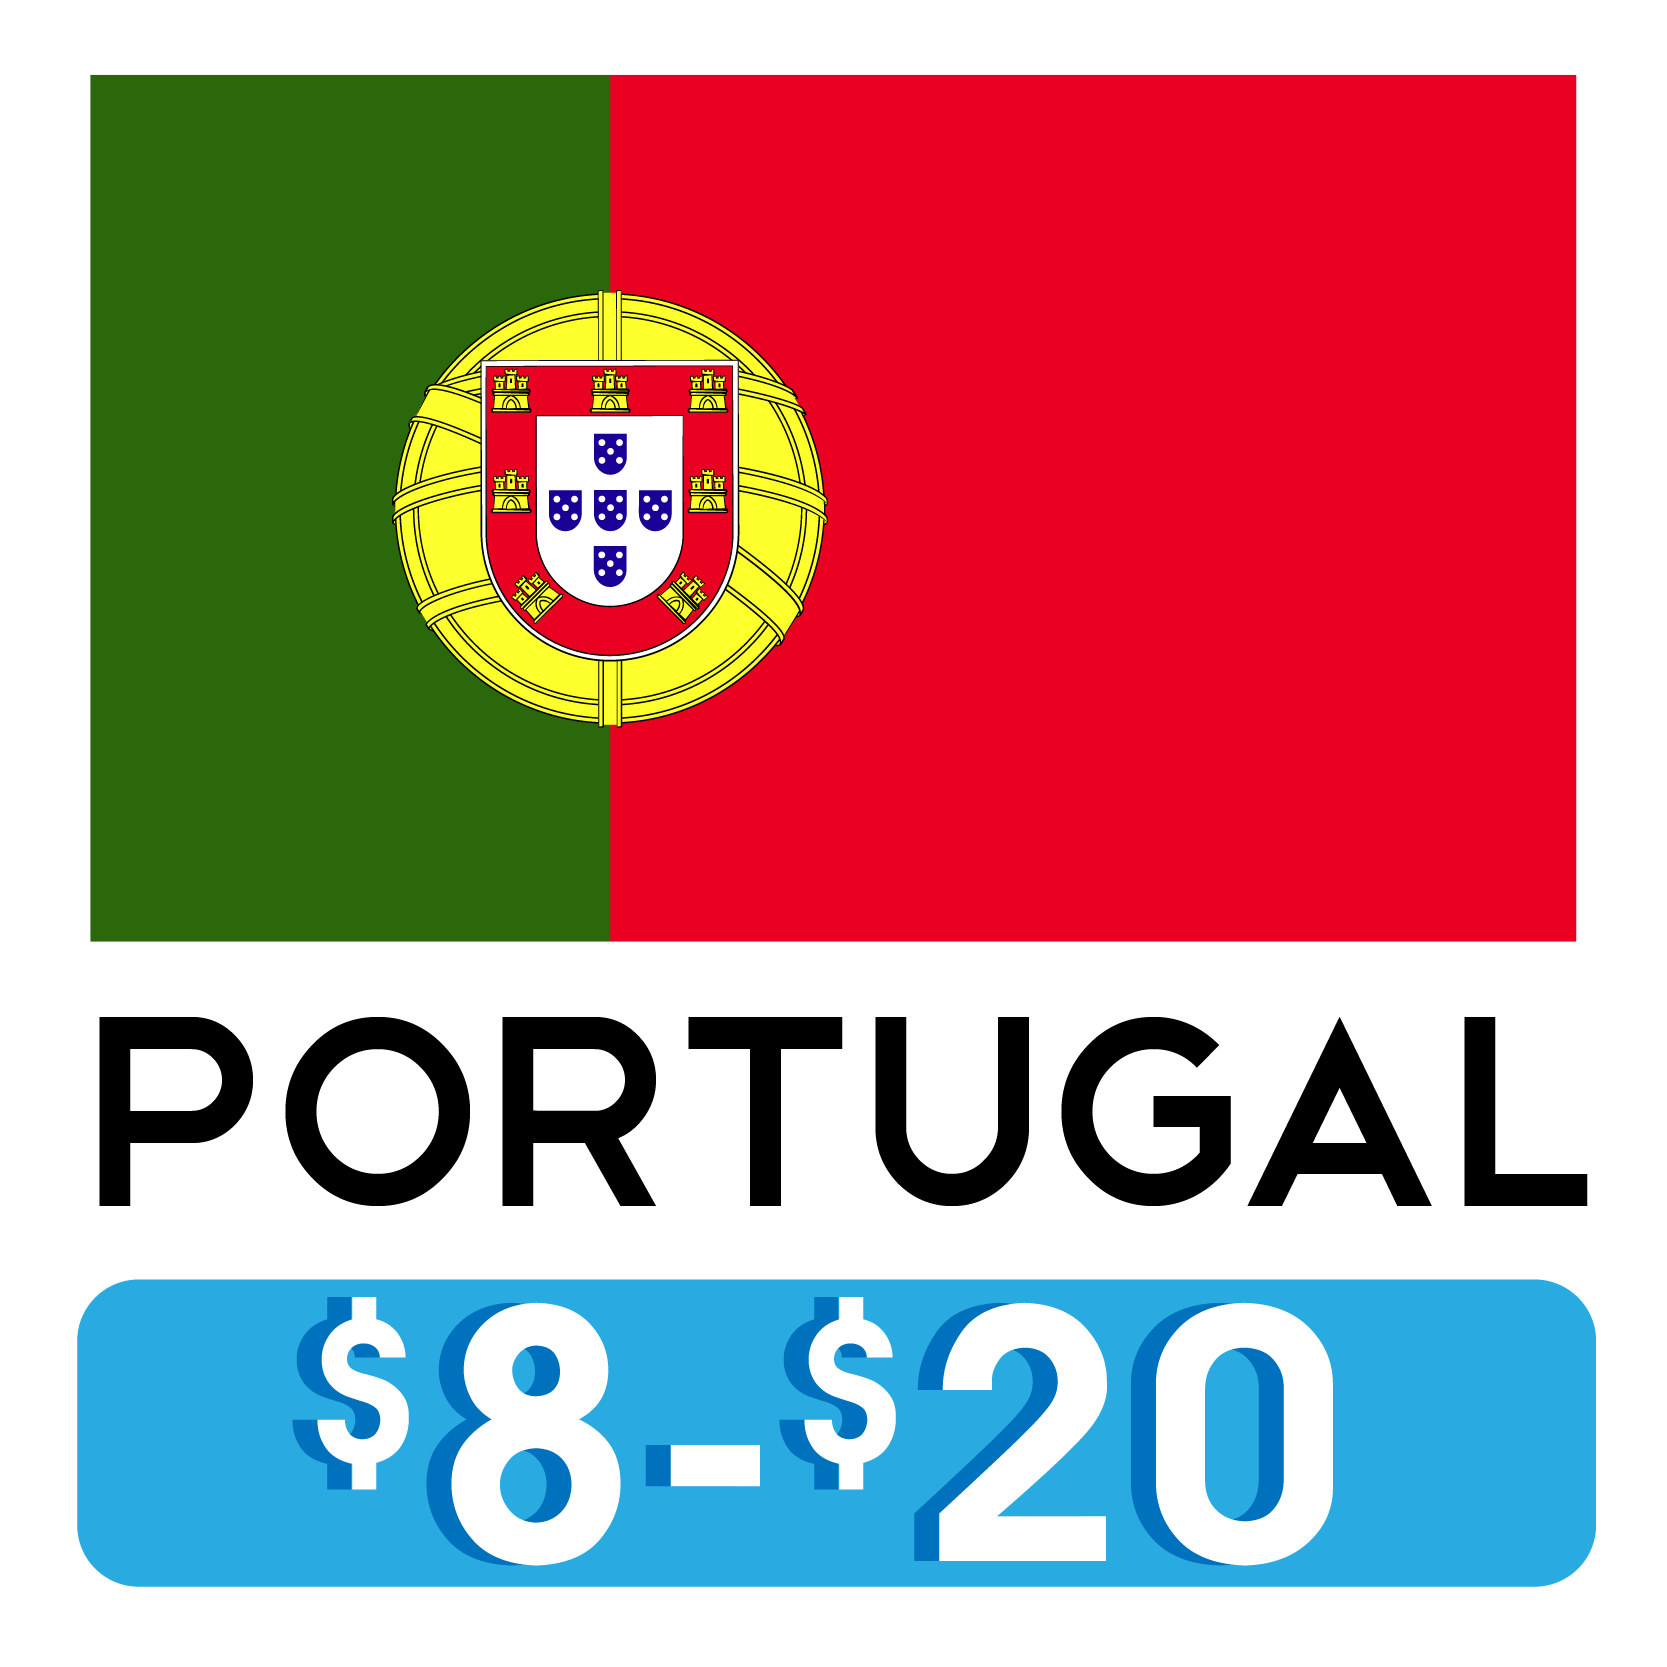 Costos_Hostales_PORTUGAL.png